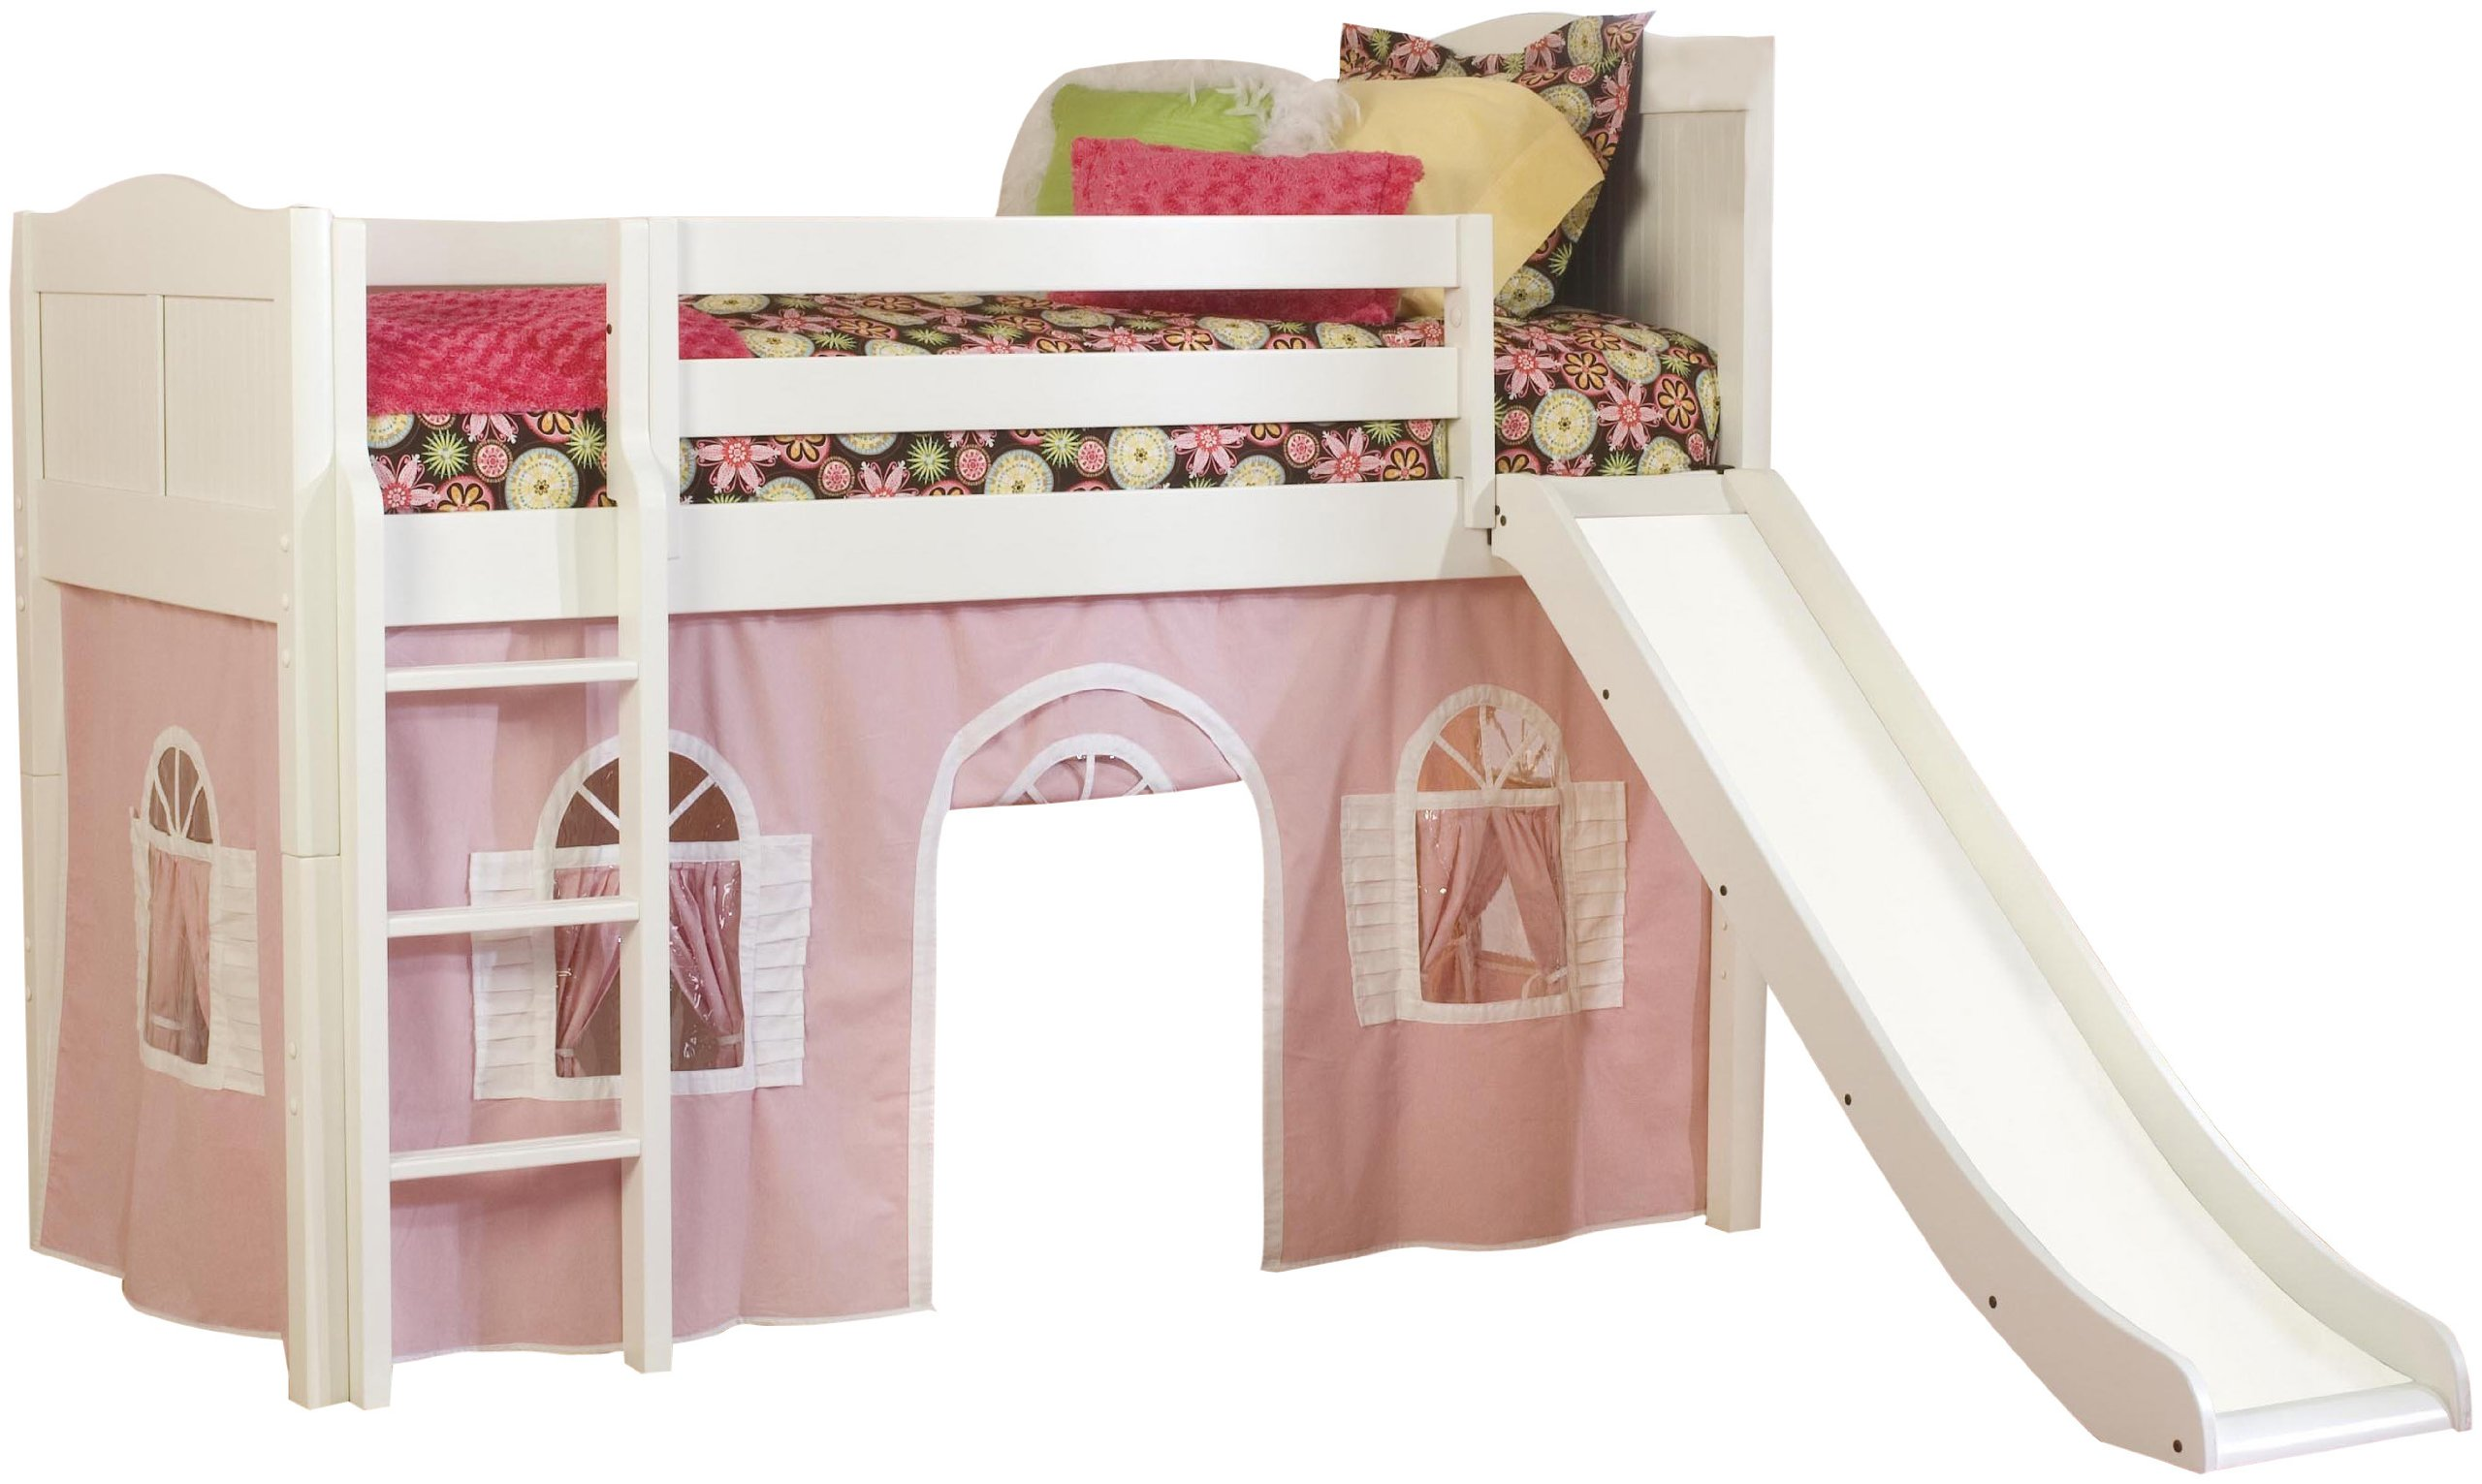 Kids Bunk Beds Slide Simple Home Decoration